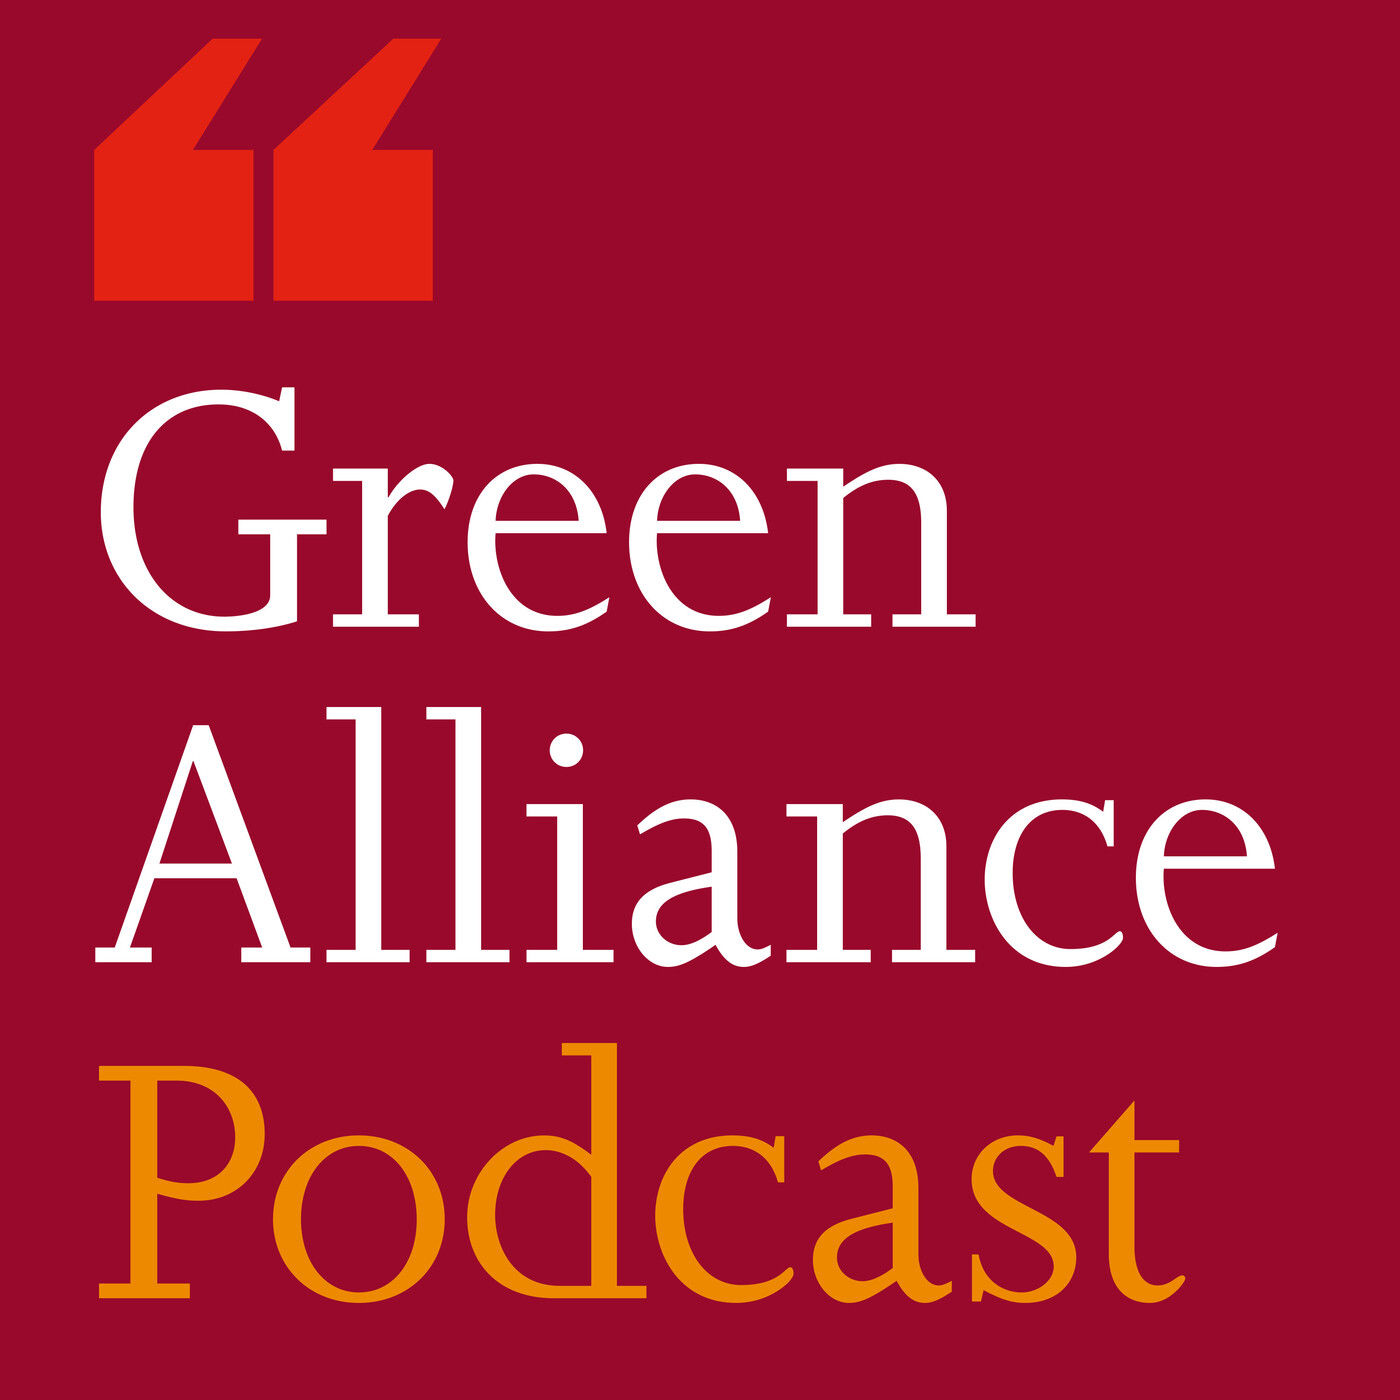 Green Alliance News Review #7: #coalfreeforever, EU green surge and Theresa May's legacy